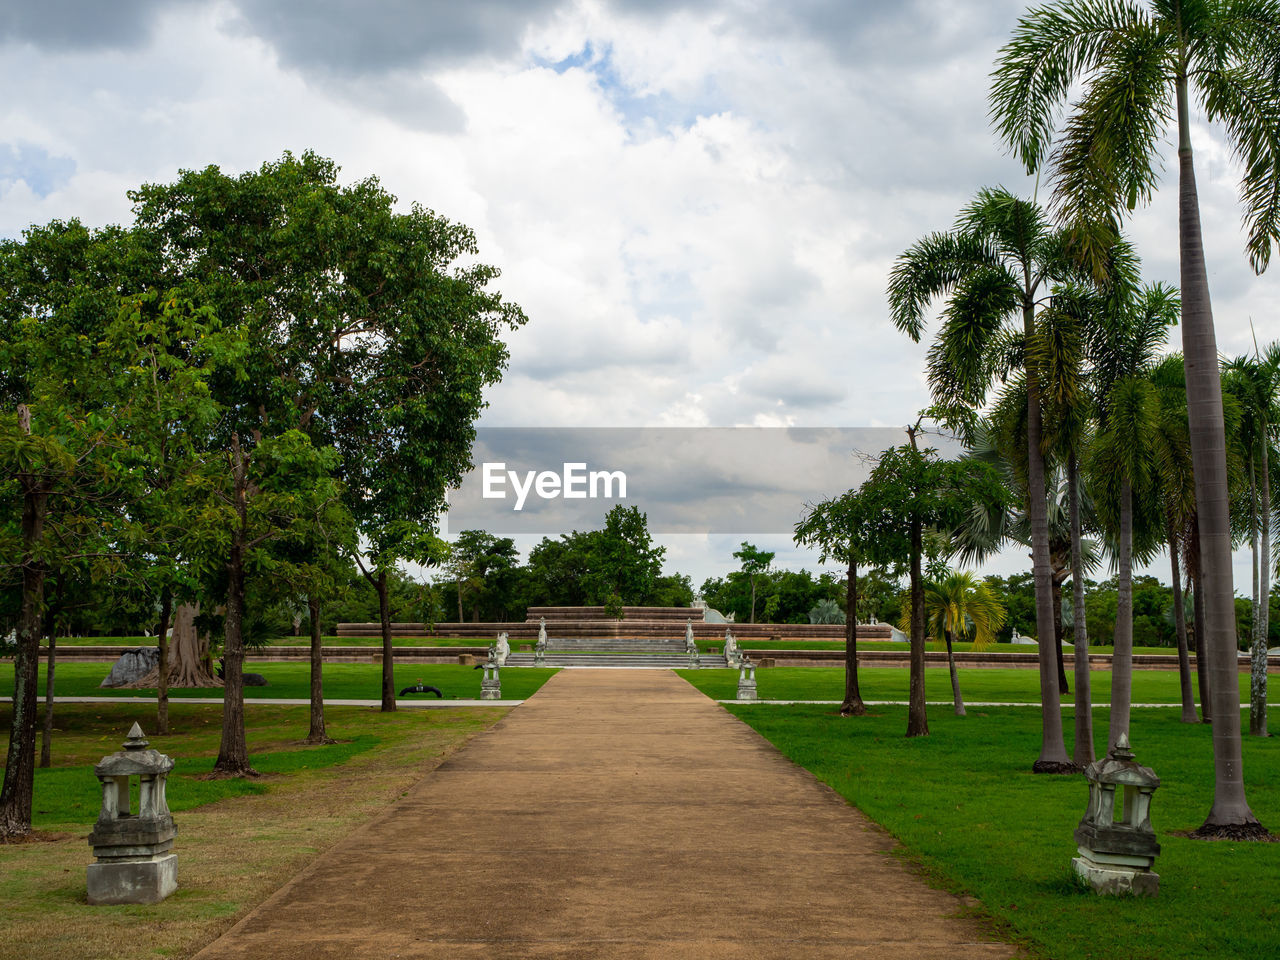 tree, cloud - sky, plant, sky, nature, the way forward, direction, day, no people, grass, footpath, palm tree, green color, beauty in nature, growth, tranquility, park, tranquil scene, tropical climate, scenics - nature, outdoors, diminishing perspective, treelined